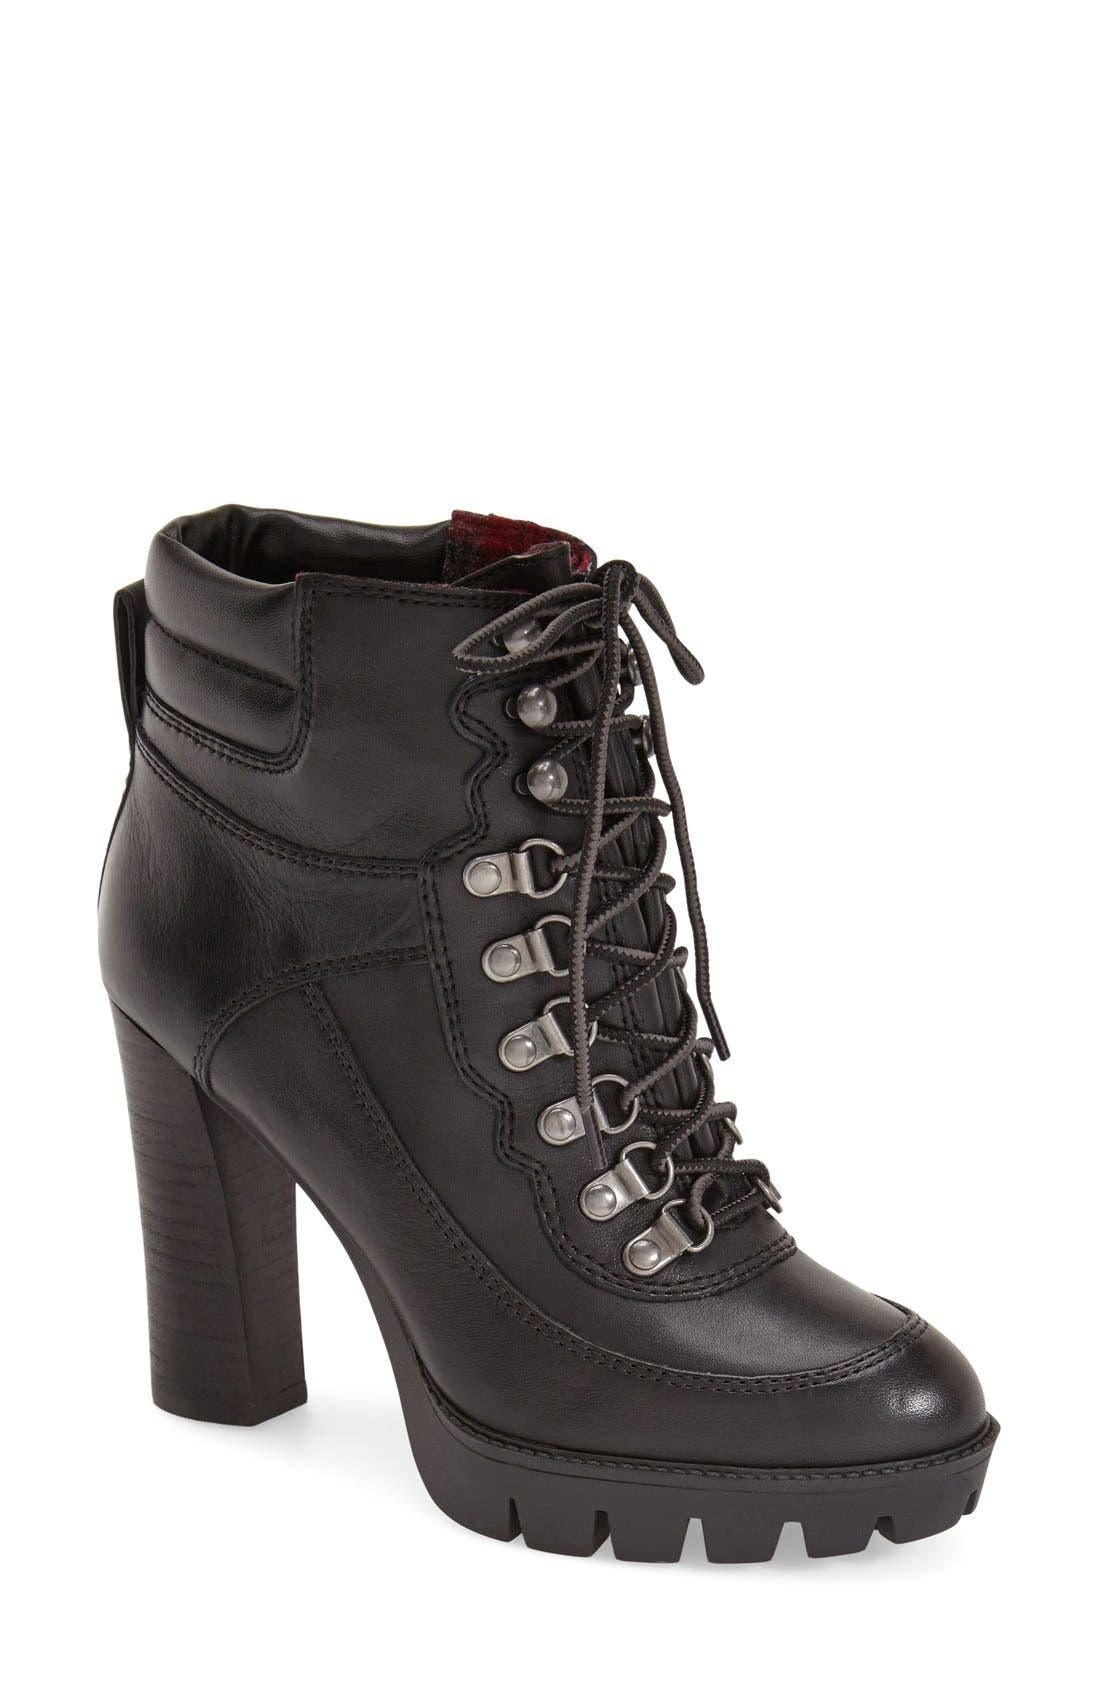 Alternate Image 1 Selected - Nine West 'Abrial' Lace-Up Bootie (Women)